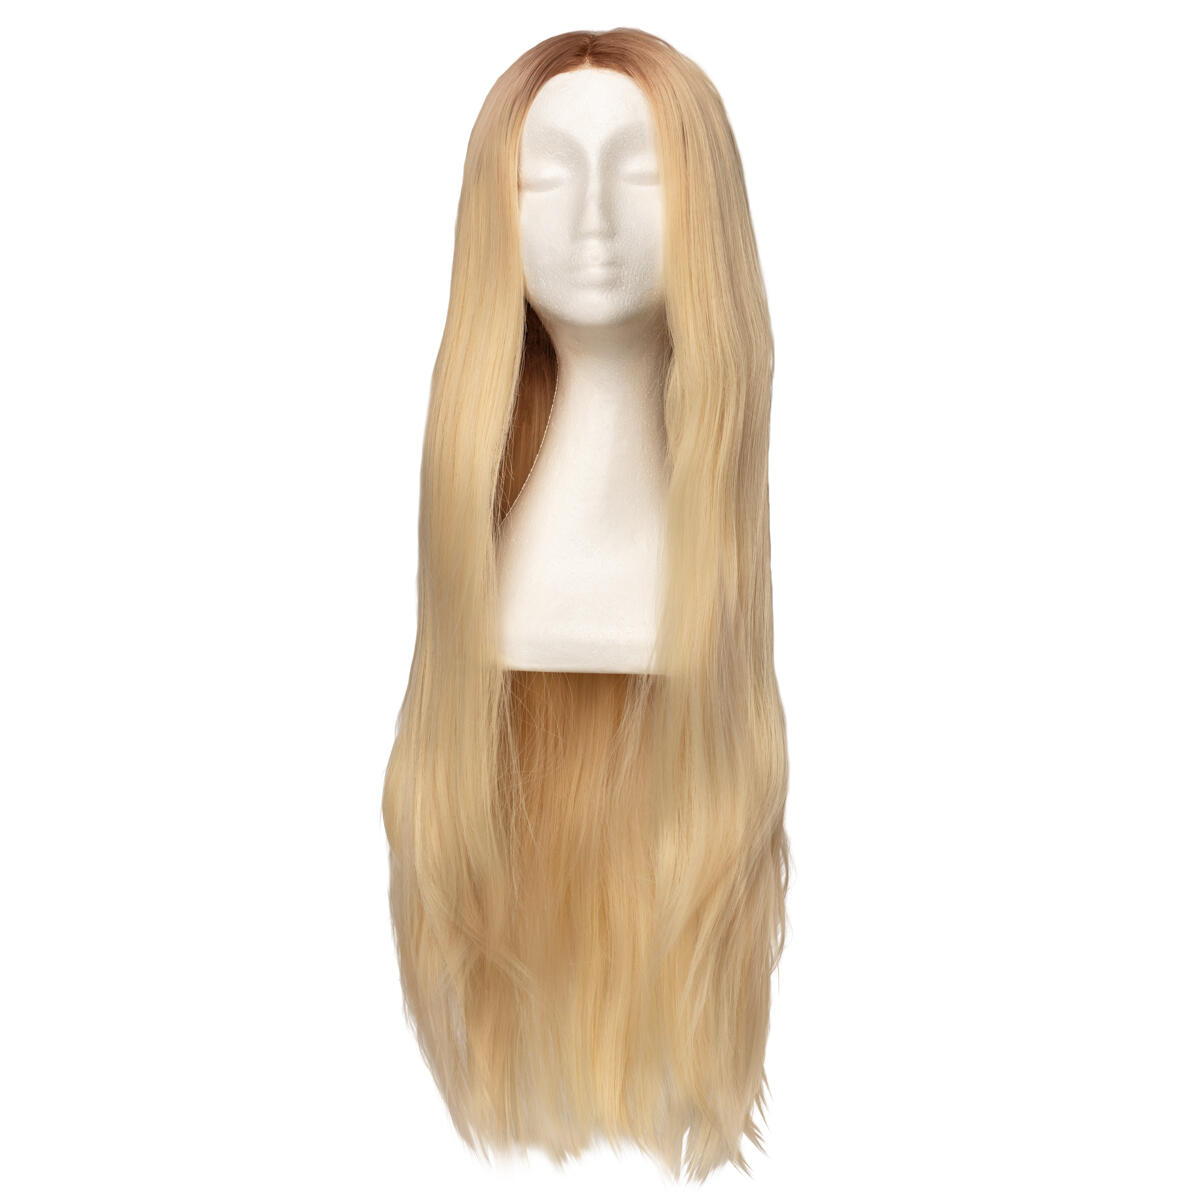 Lace Front Perücke - Straight Long R7.3/10.8 Cendre Ash Blonde Root 80 cm